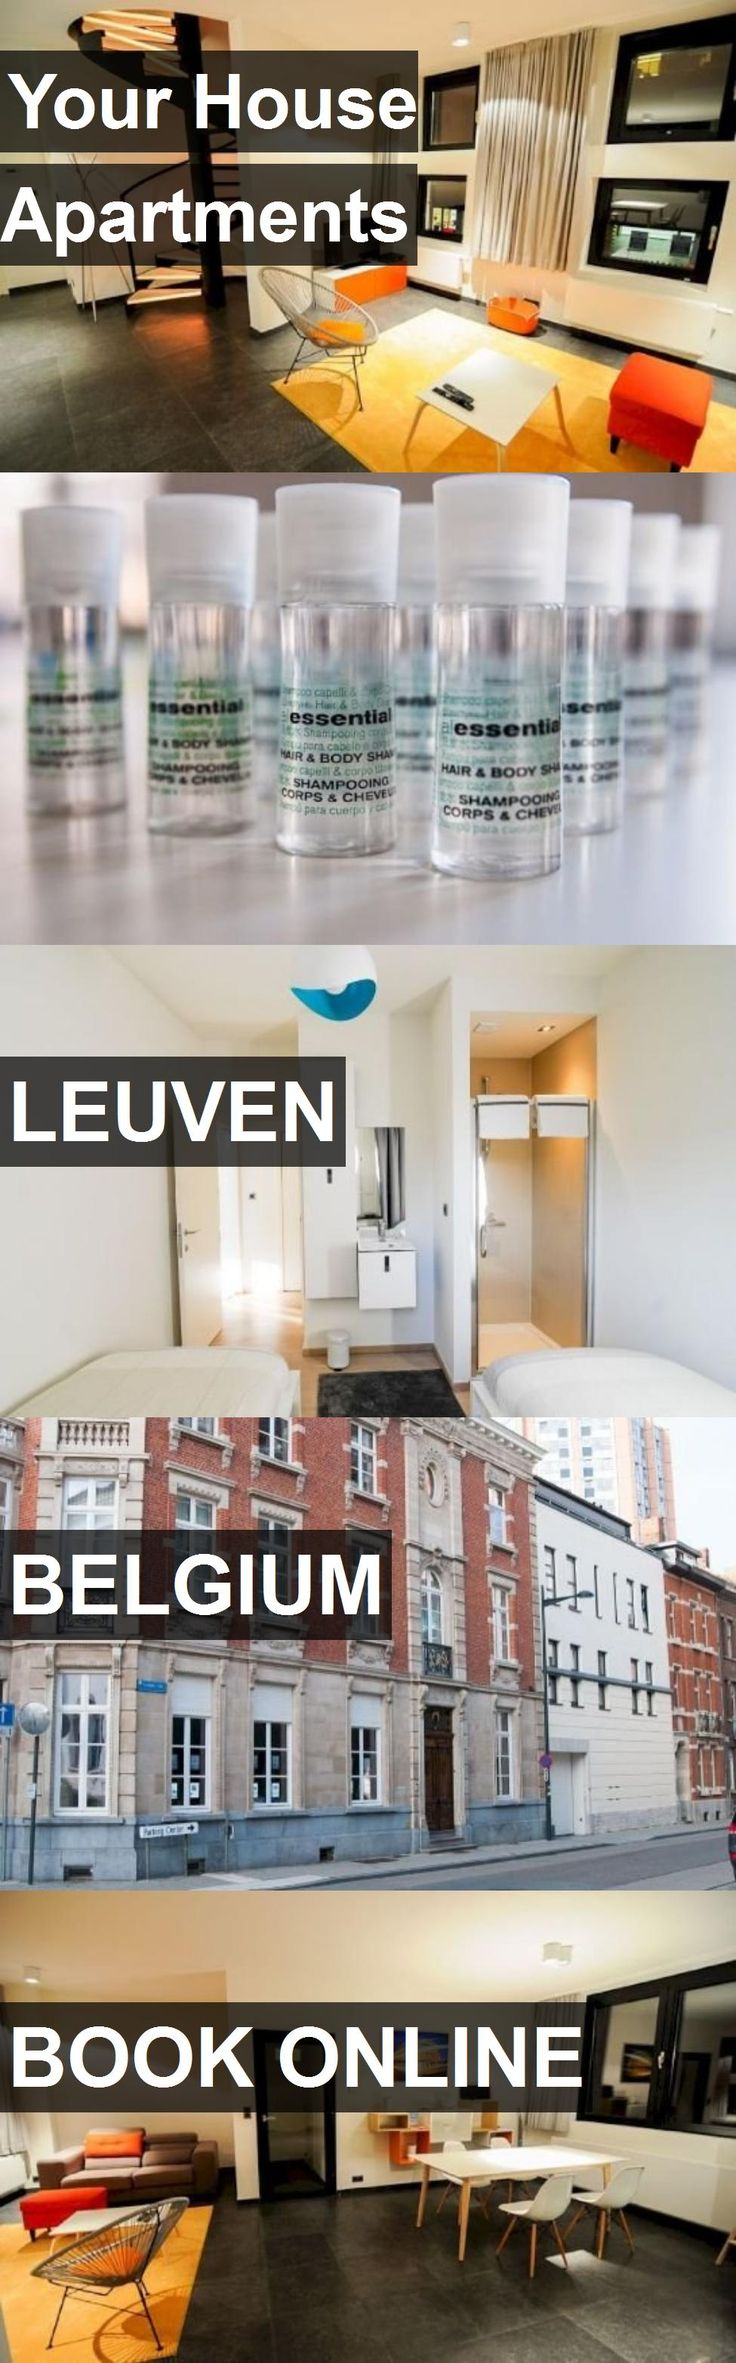 Your House Apartments in LEUVEN, Belgium. For more information, photos, reviews and best prices please follow the link. #Belgium #LEUVEN #travel #vacation #apartment